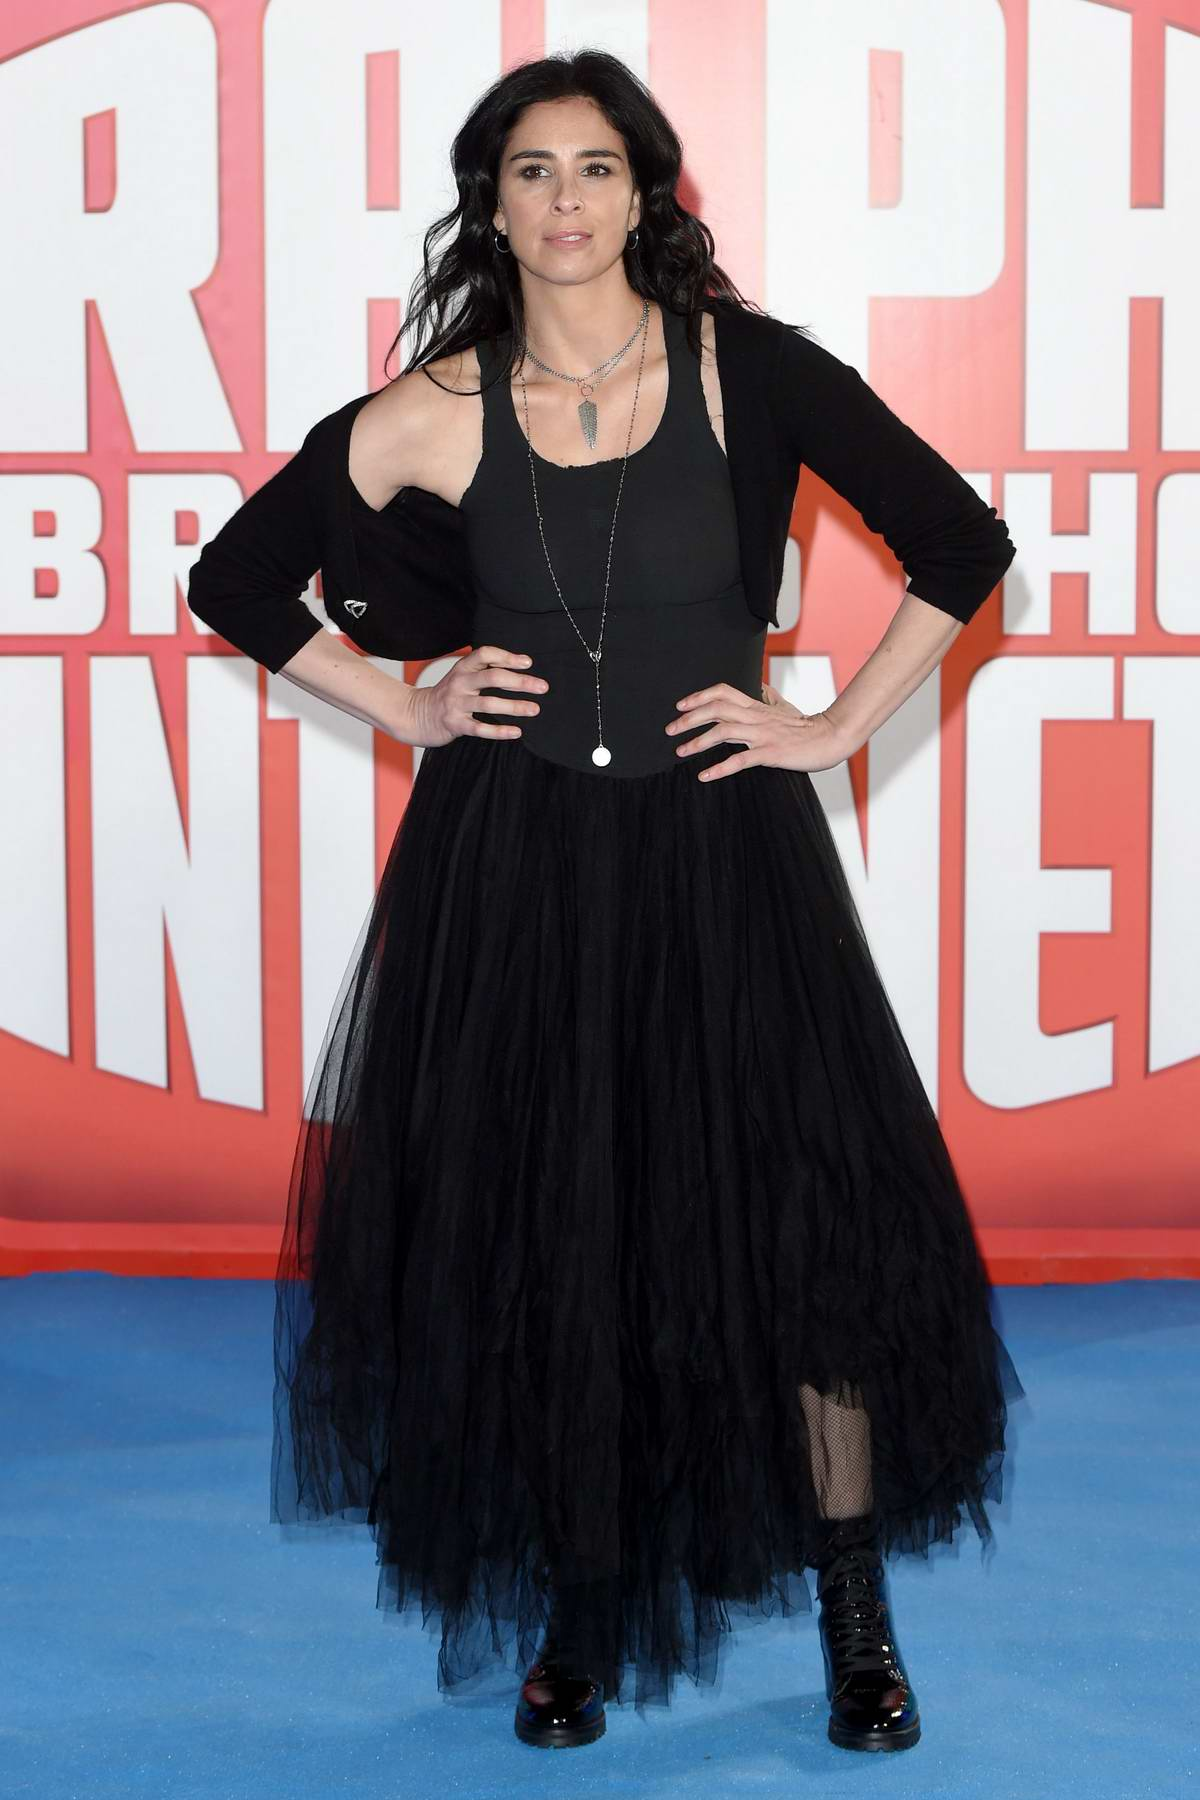 Sarah Silverman Attends Premiere Of Ralph Breaks The Internet At Curzon Mayfair In London Uk